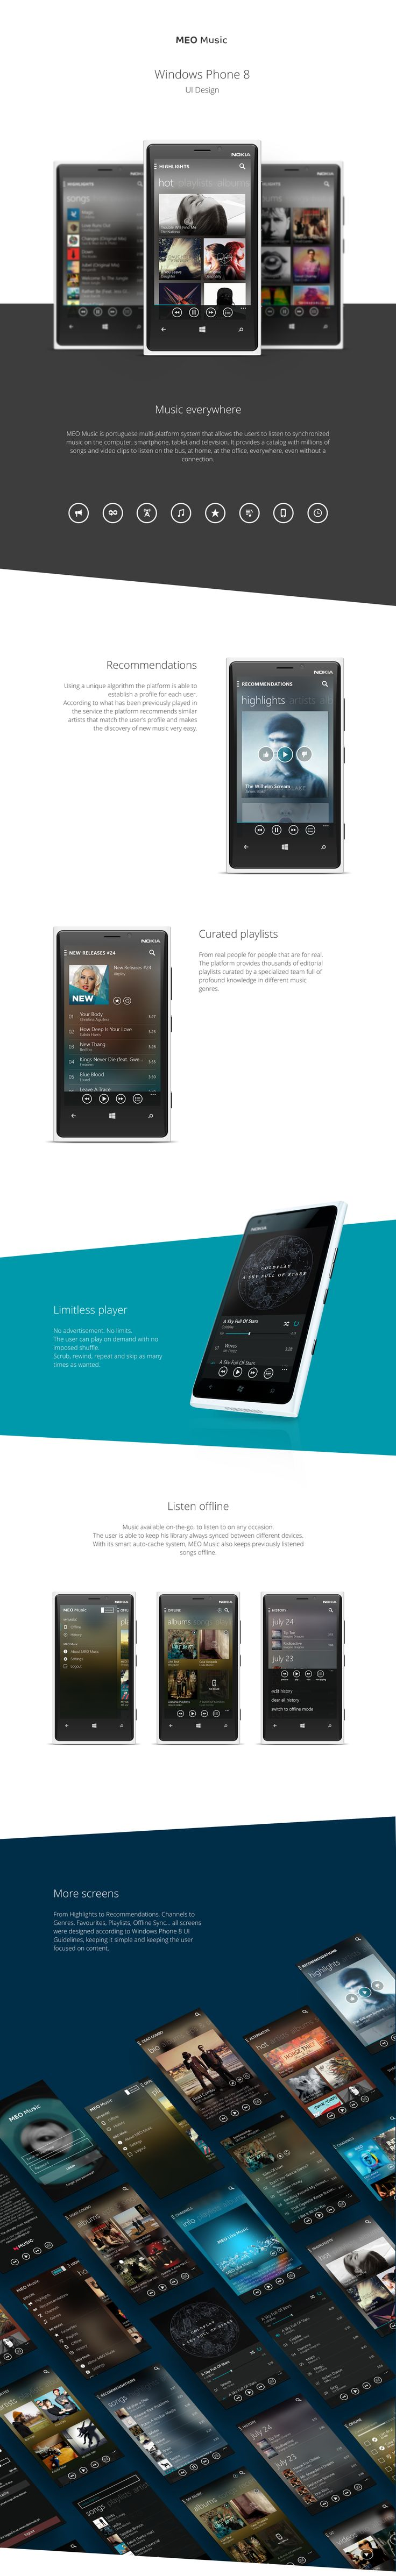 MEO Music / Windows Phone 8 on Behance